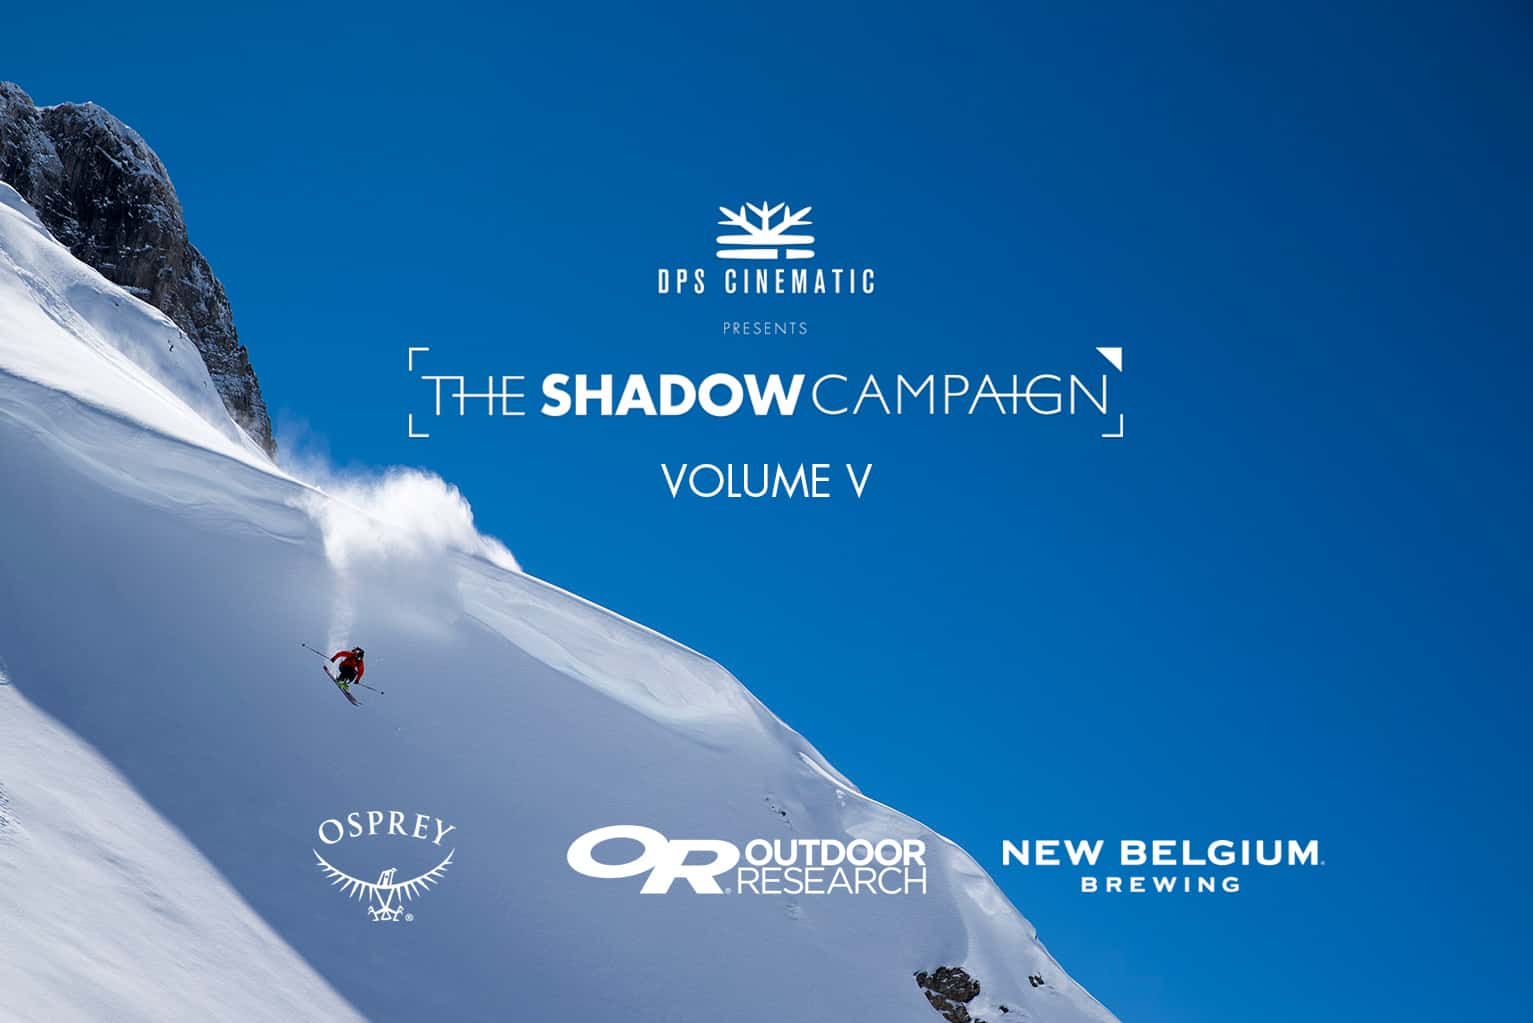 DPS Cinematic Drops Beautiful New Trailer For Film Series The Shadow Campaign – Video